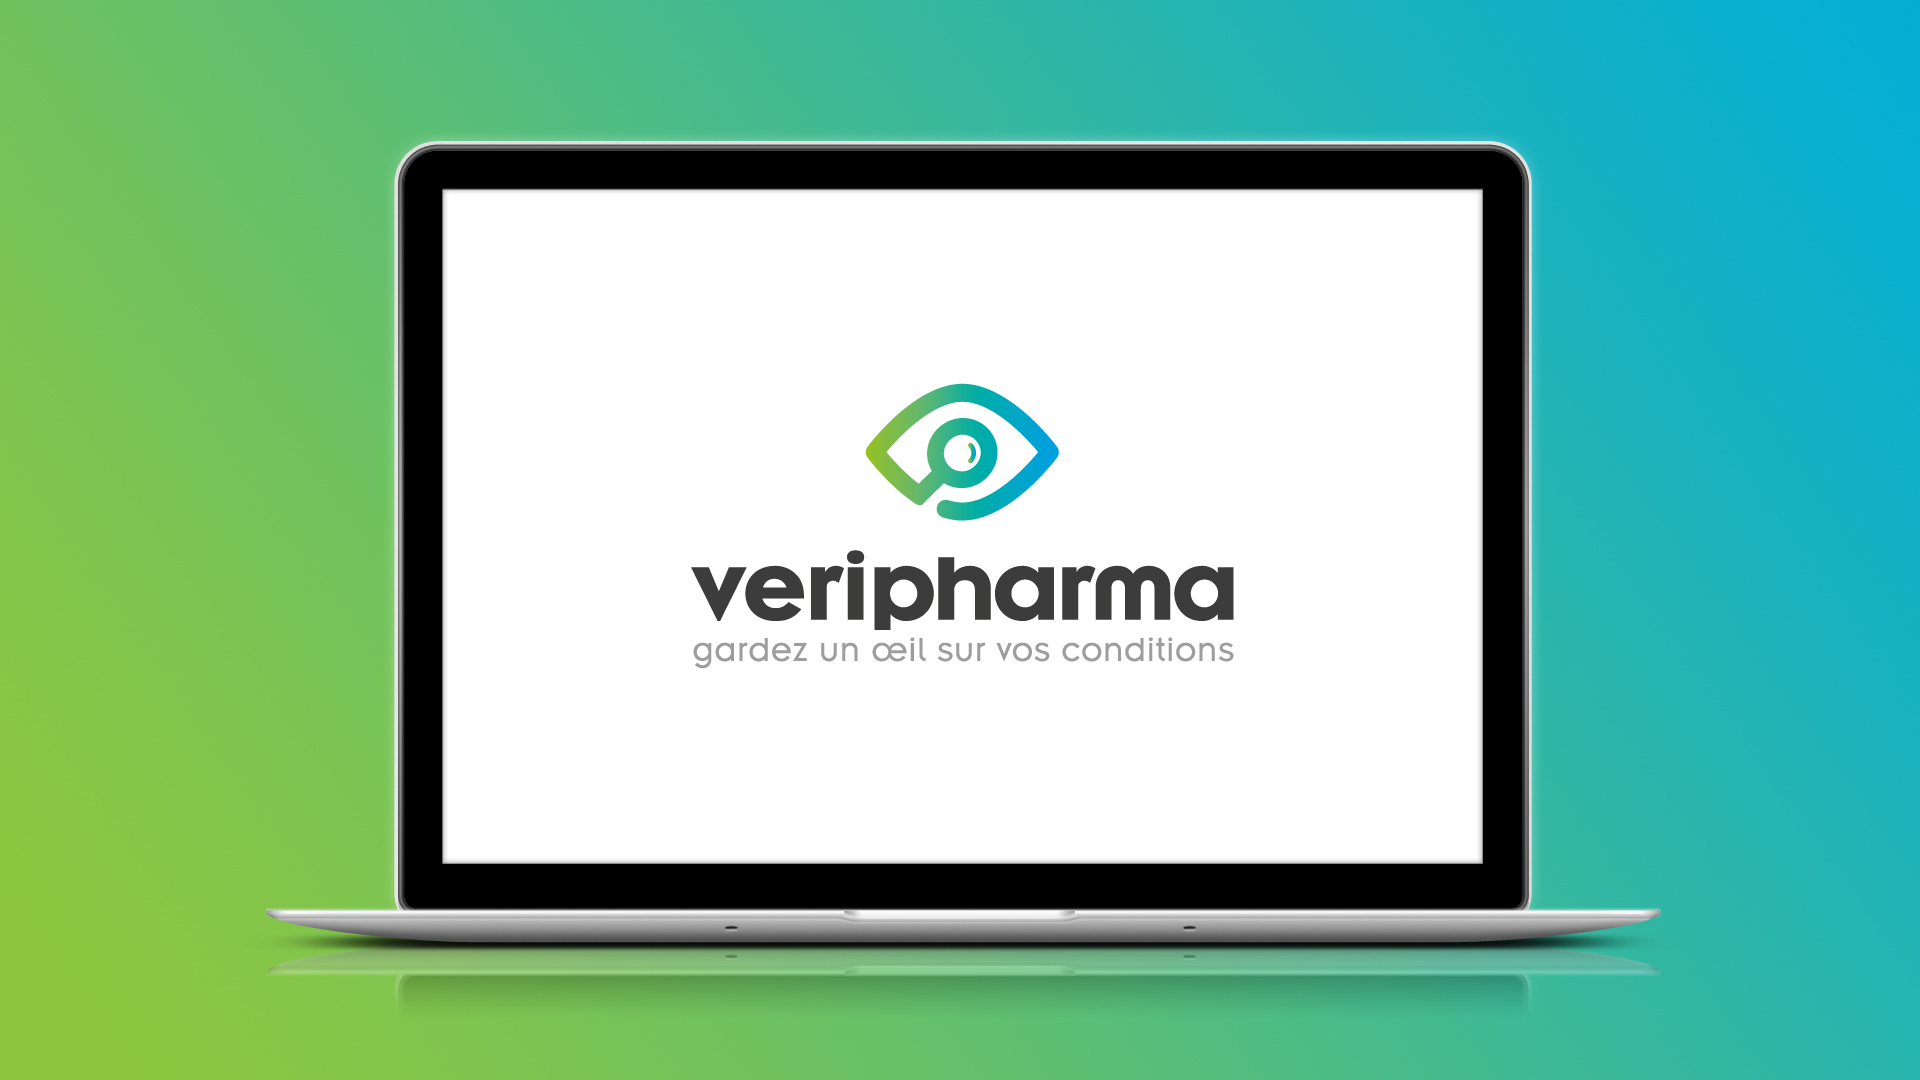 veripharma-creation-logo-site-internet-caconcept-alexis-cretin-graphiste-montpellier